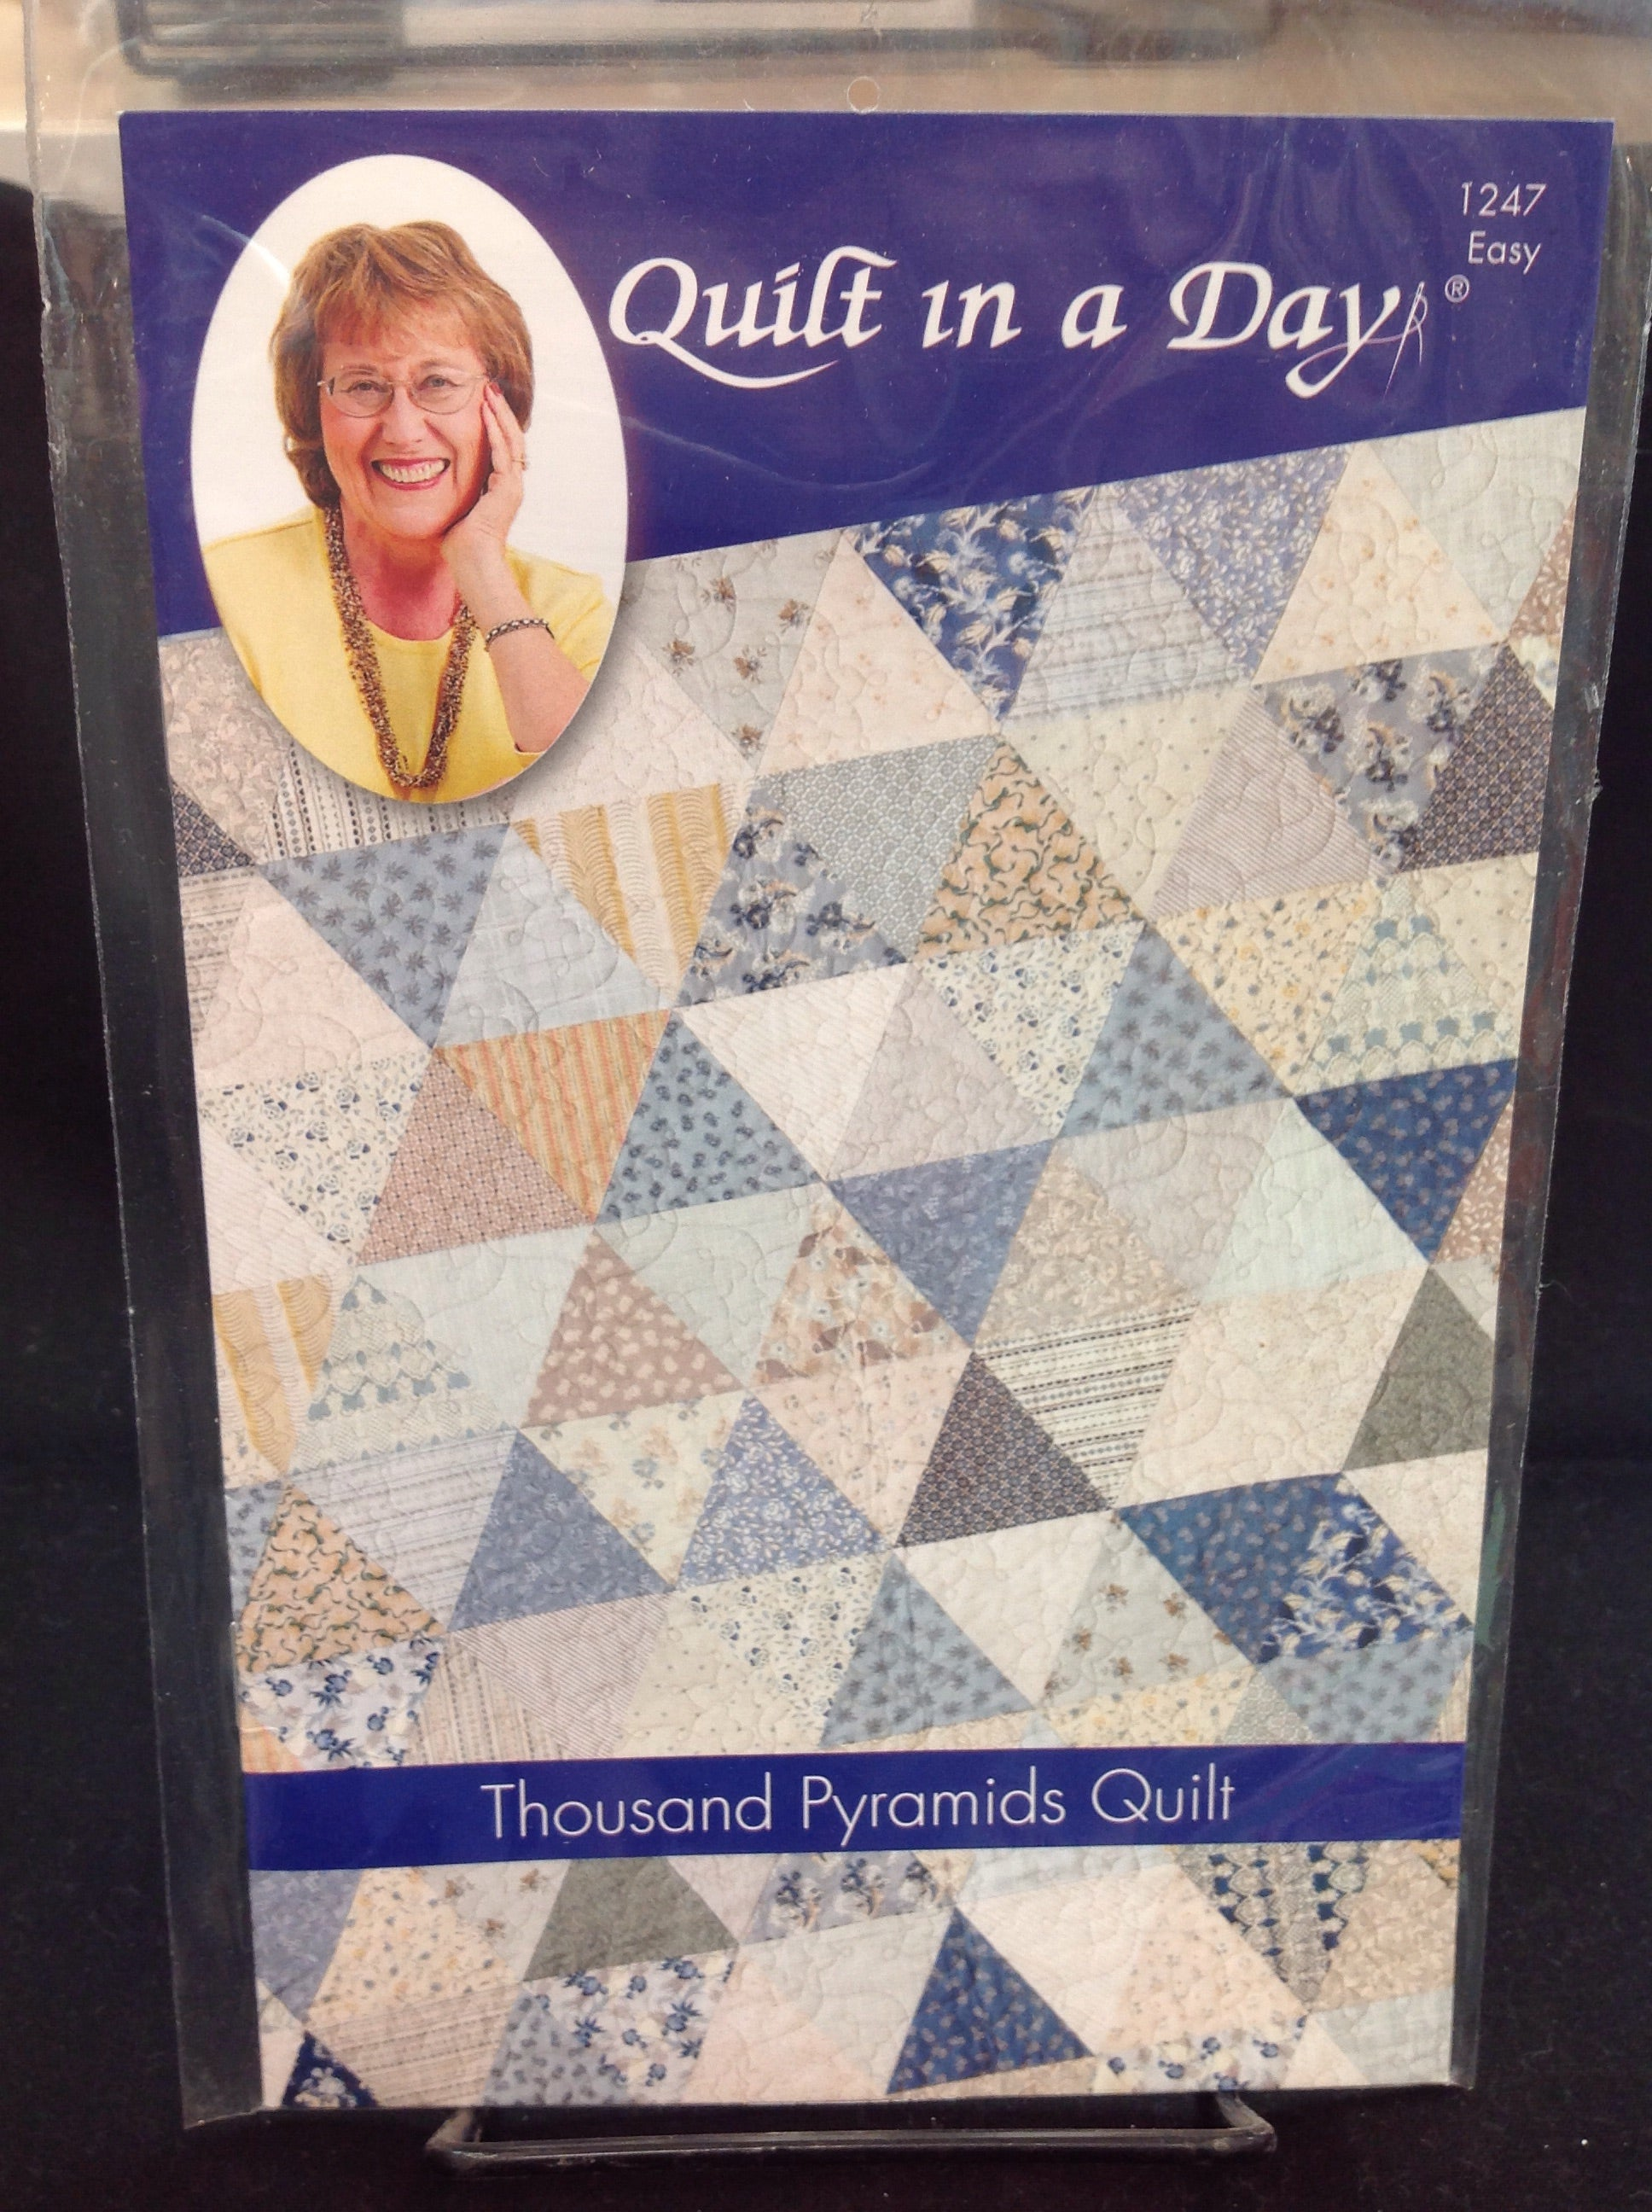 Thousand Pyramid Quilt  by Quilt in a Day